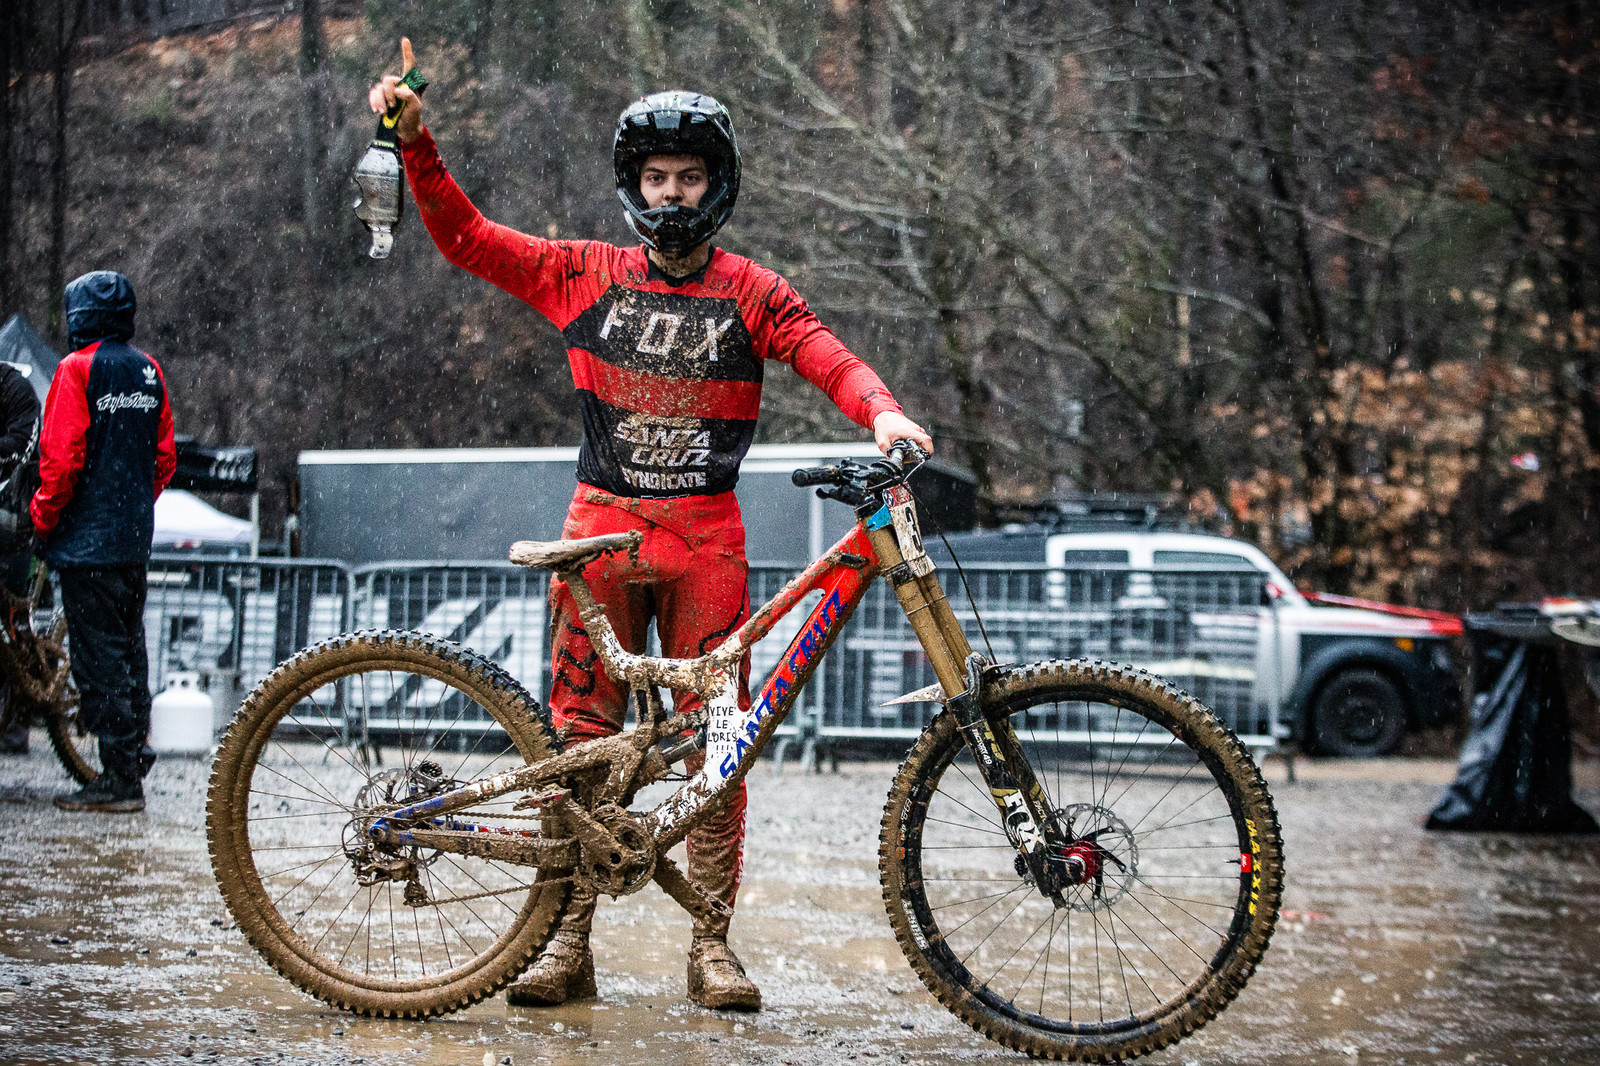 WINNING BIKE: Loris Vergier's Santa Cruz V10cc 29 from Windrock Pro GRT - 2019 WINNING BIKES - Mountain Biking Pictures - Vital MTB